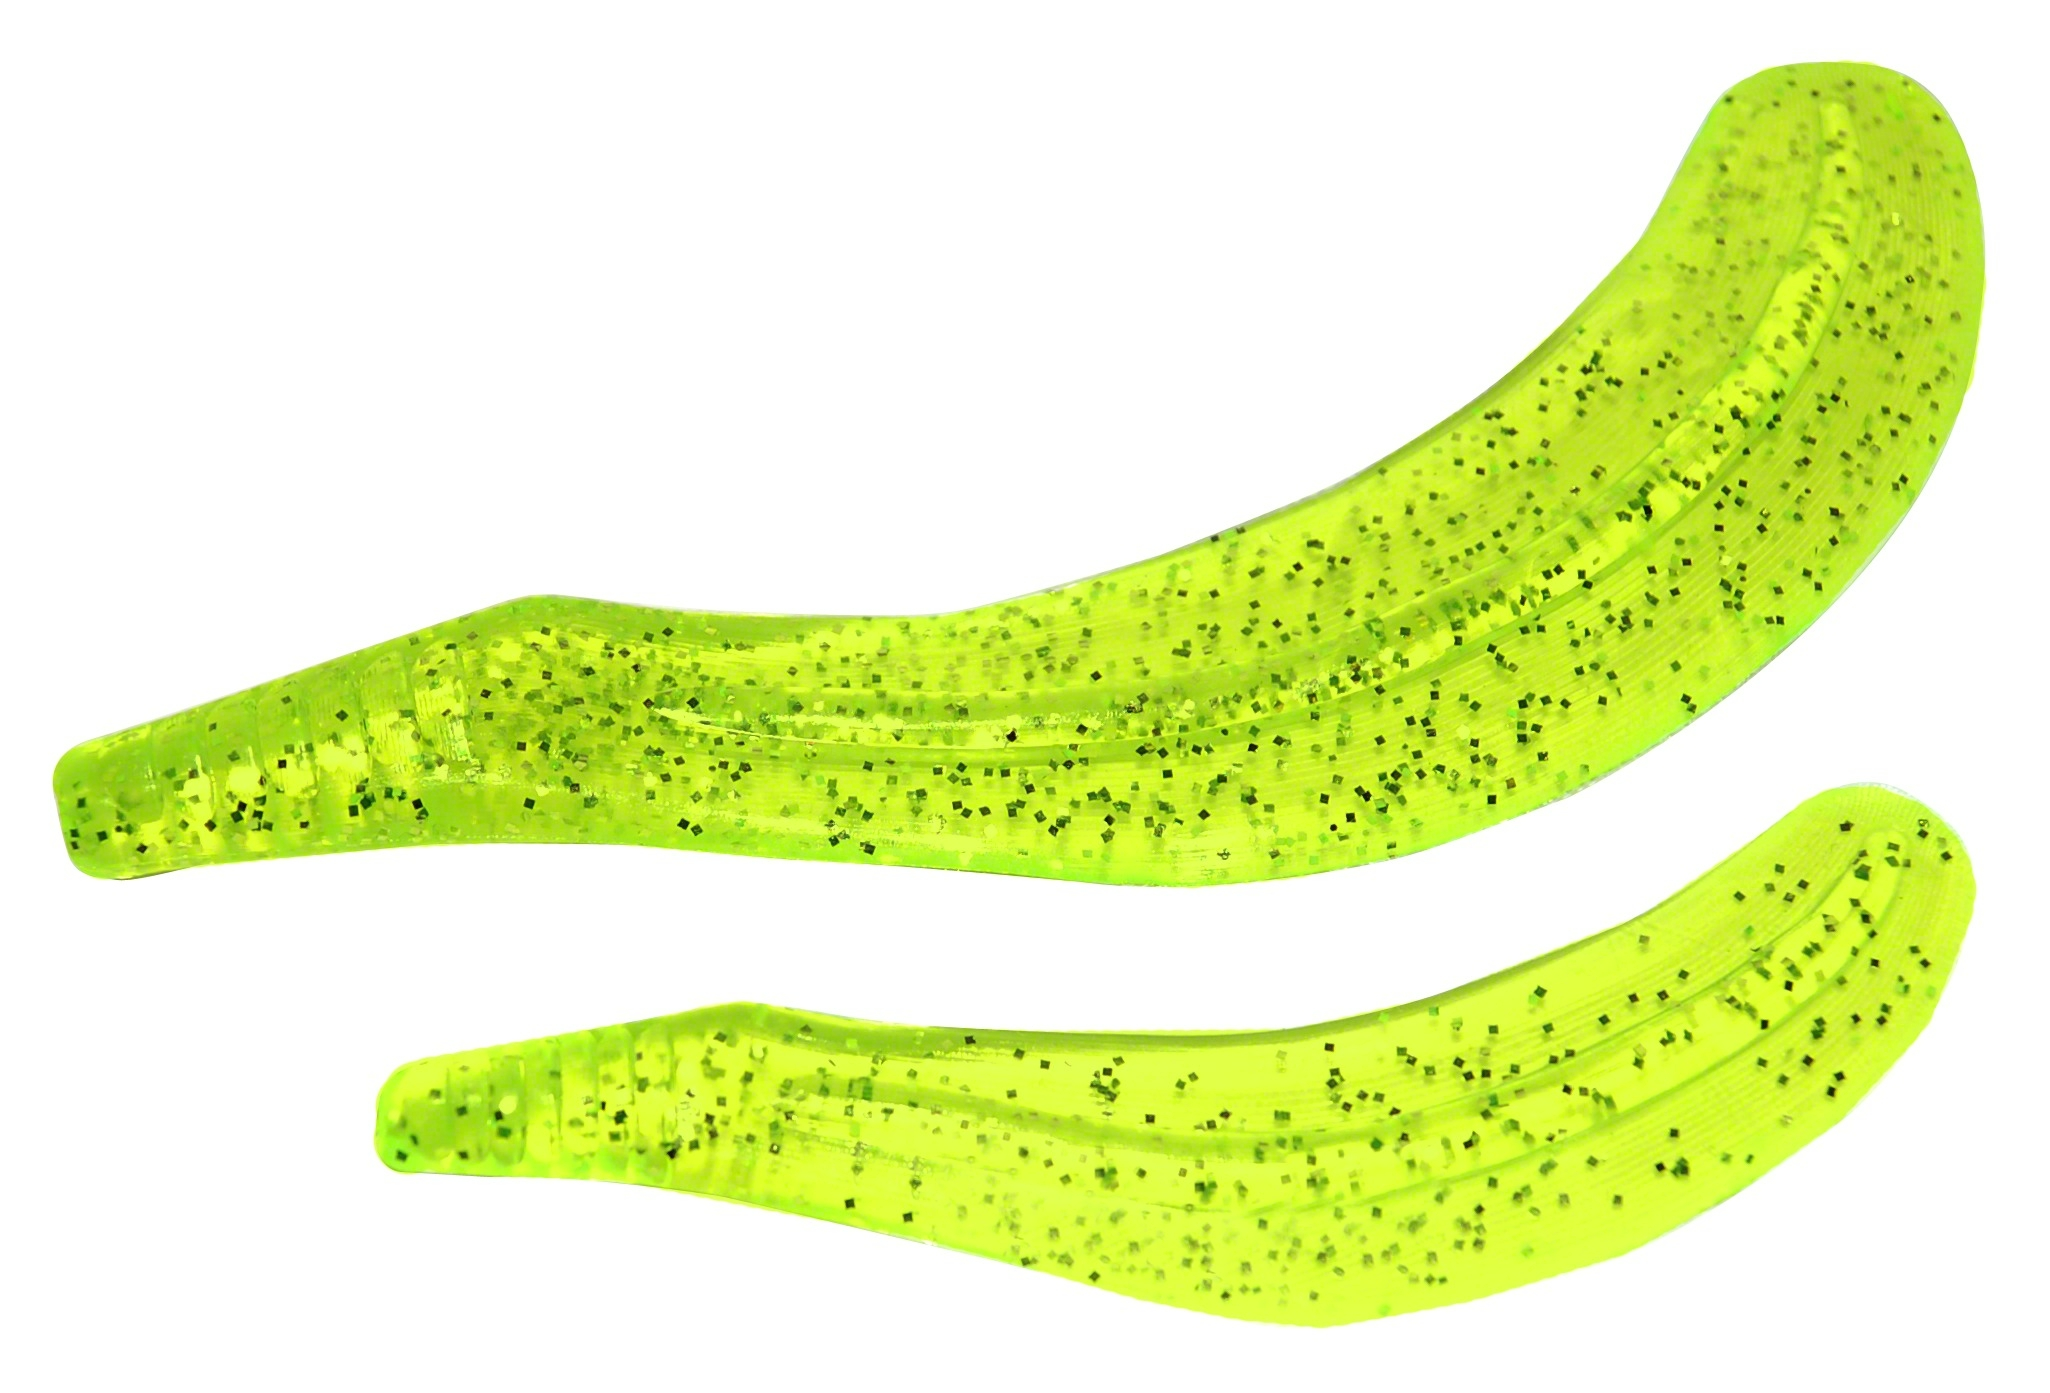 """BayCoast 6HT65 Hyper Tails 6/"""" Silky Chartreuse"""